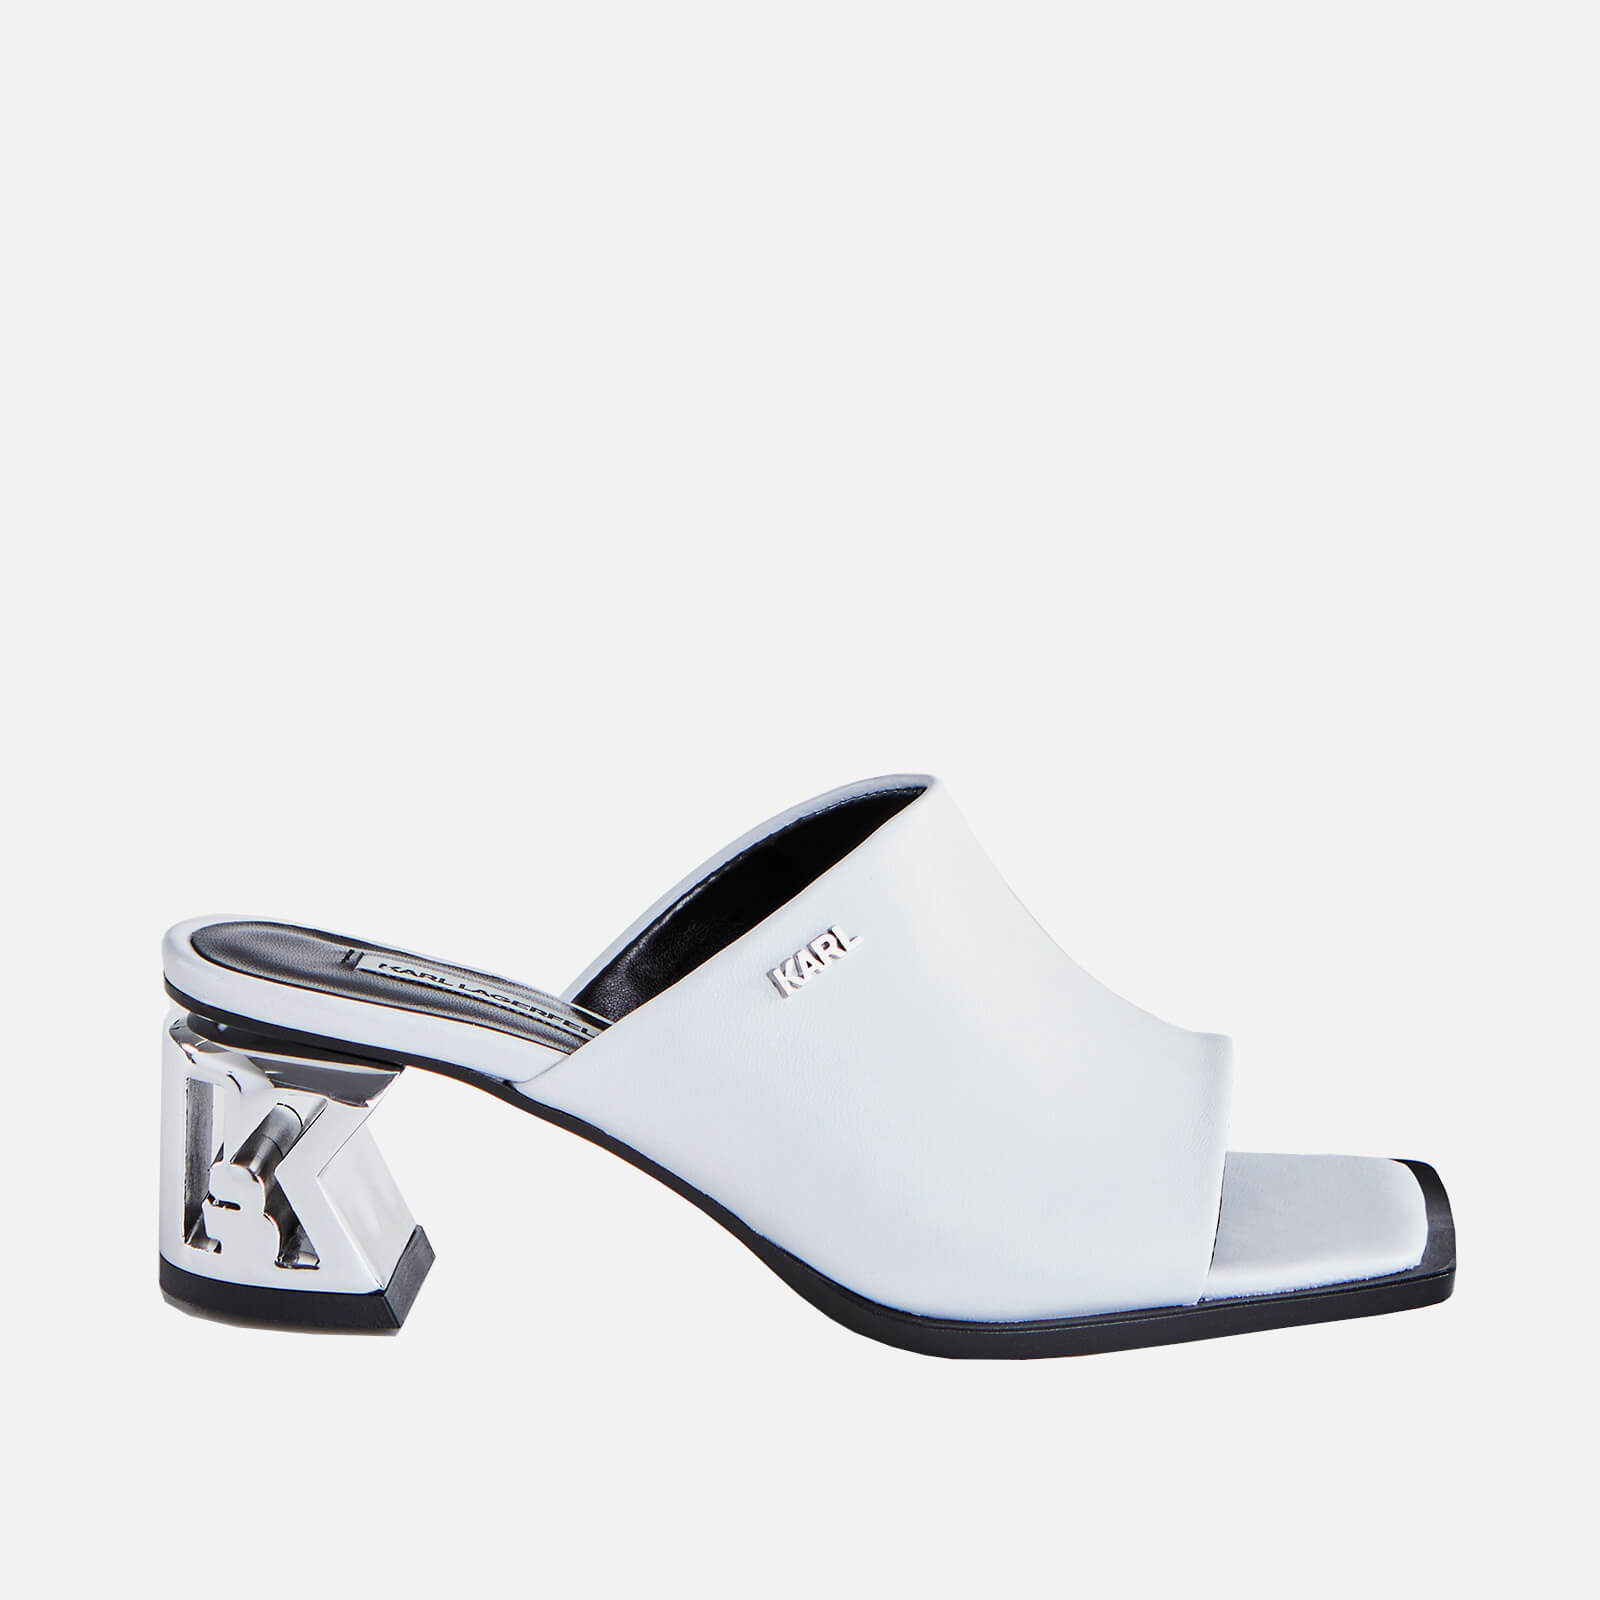 Karl Lagerfeld Womens K Blok Leather Square Toe Heeled Mules White Uk 8